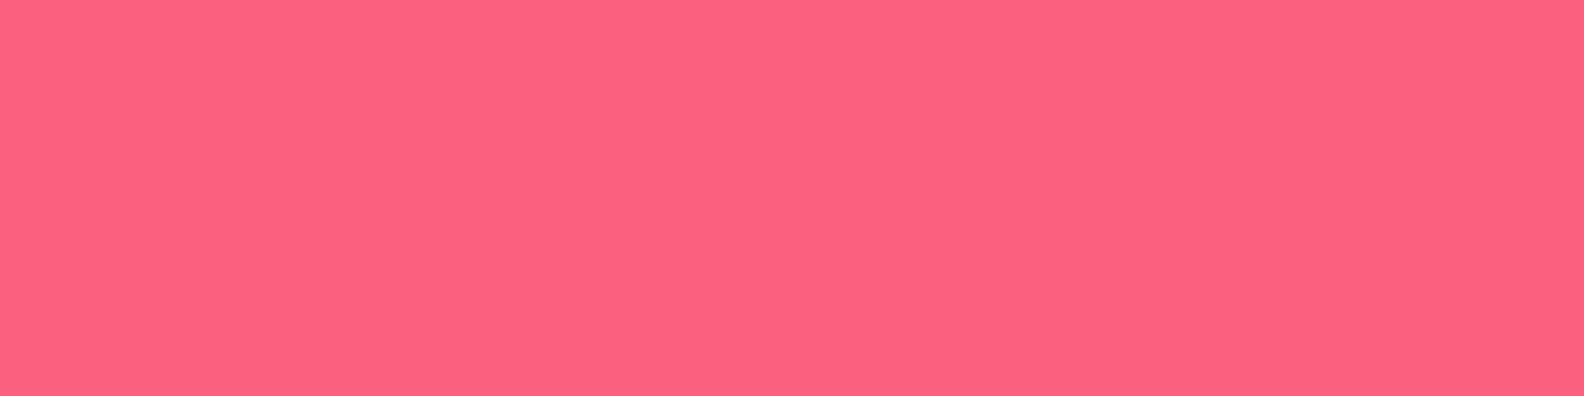 1584x396 Brink Pink Solid Color Background